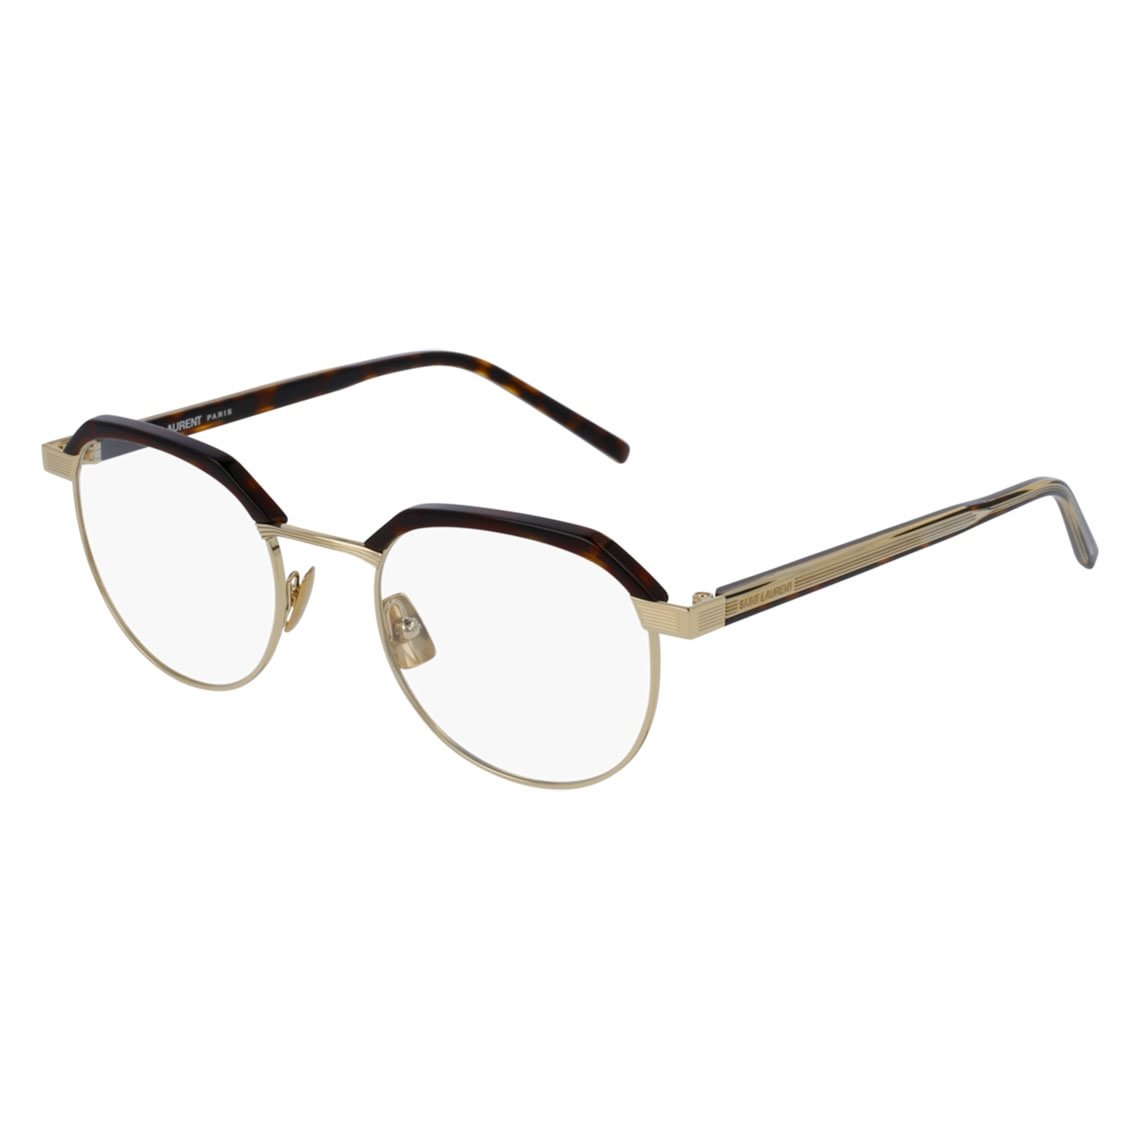 Saint Laurent SL 124 003 5021